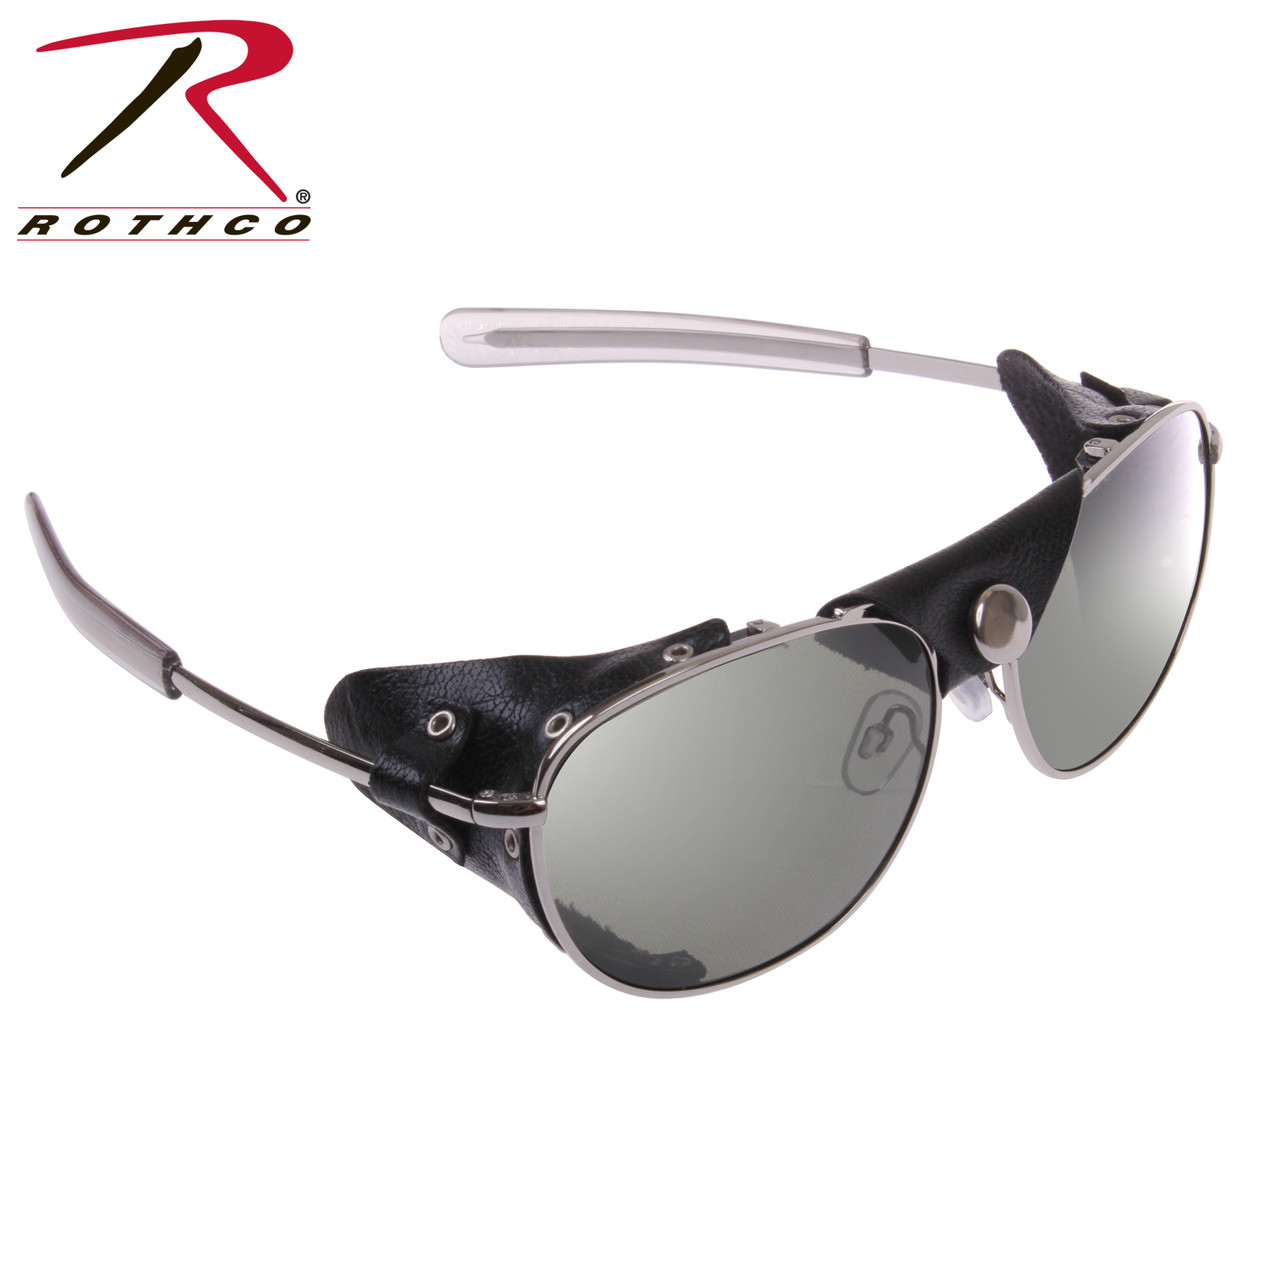 544c4332f9e Tactical Aviator Sunglasses w Wind Guards - Hero Outdoors